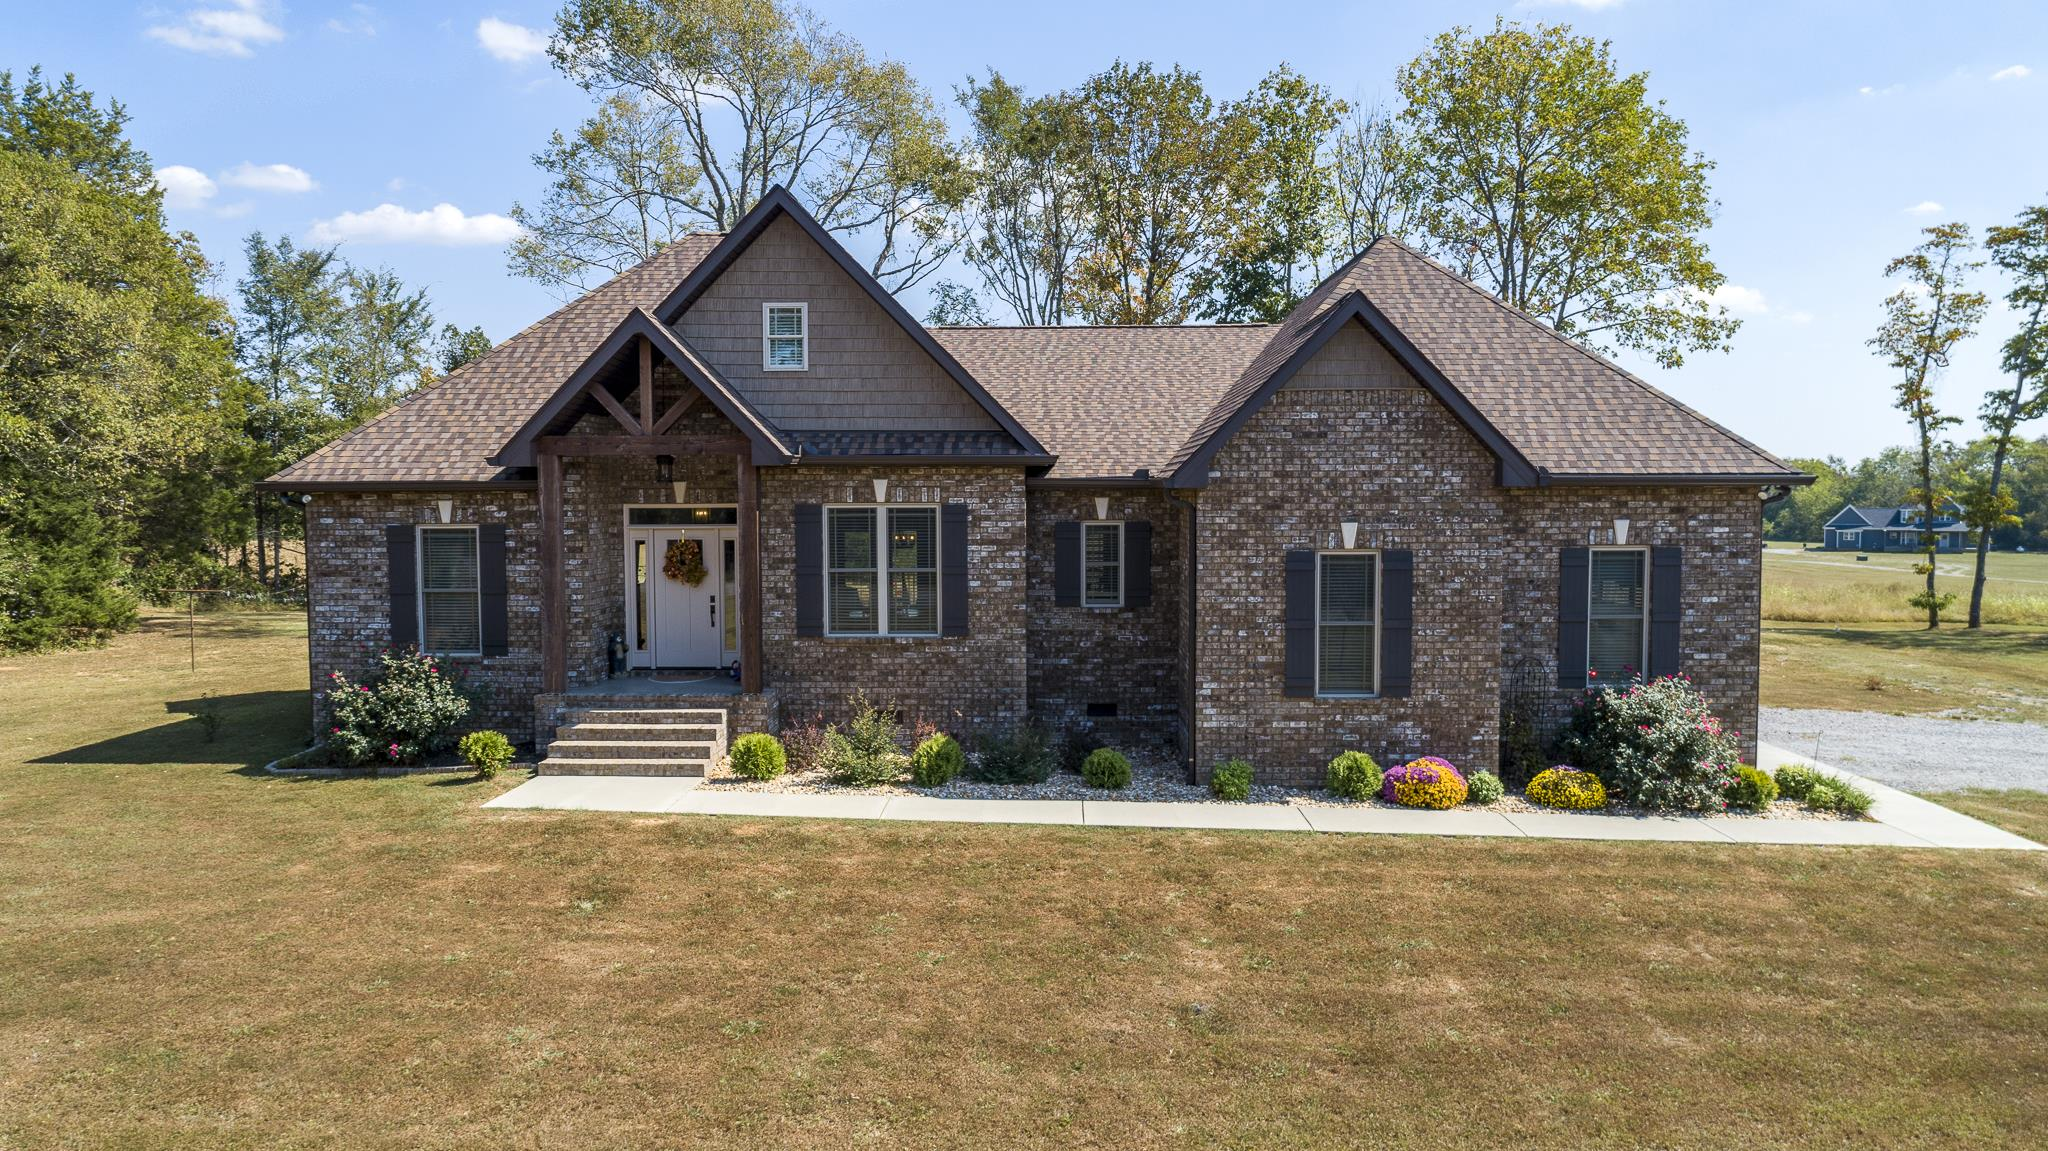 10938 Newtown Rd, Unionville, TN 37180 - Unionville, TN real estate listing